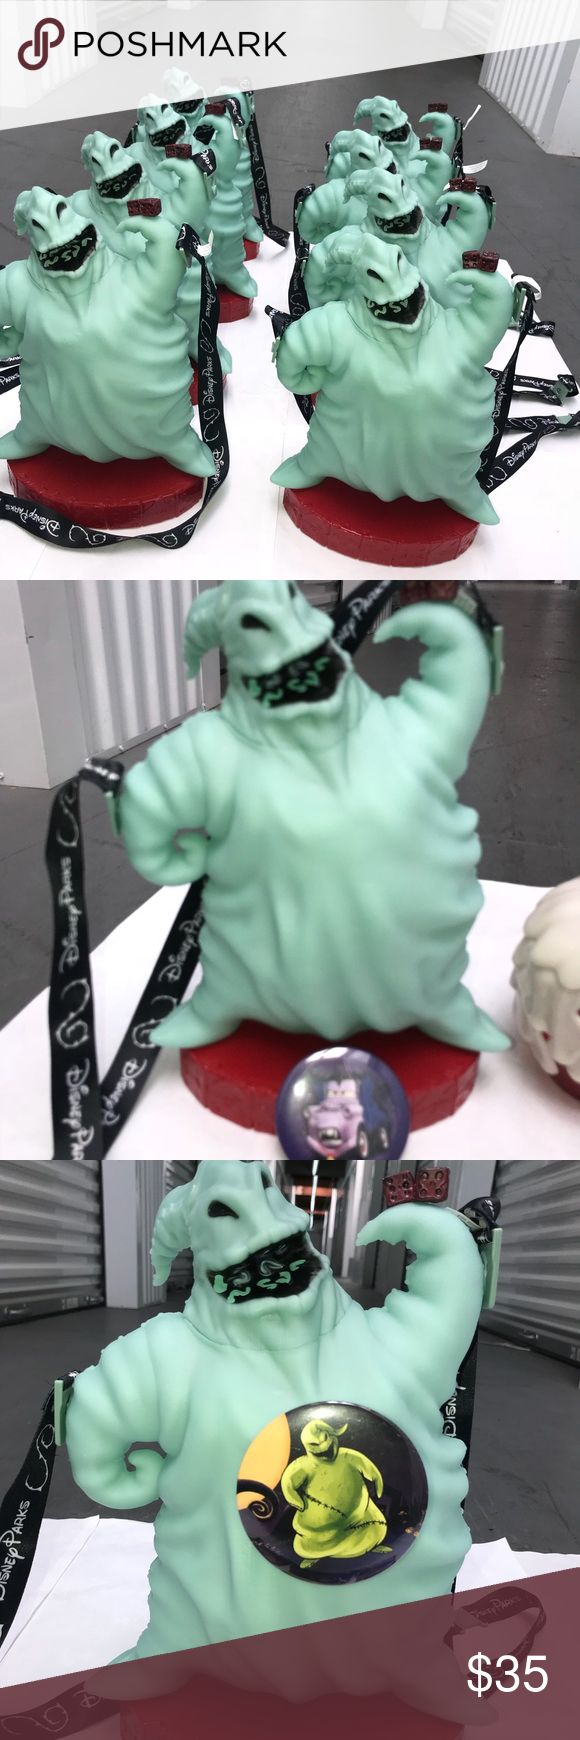 """DISNEYLAND """"OOGIE BOOGIE POPCORN BUCKET"""" New DISNEYLAND (2017) NIGHTMARE BEFORE CHRISTMAS EXCLUSIVE """"OOGIE BOOGIE COLLECTIBLE POPCORN BUCKET"""" !! ....... THESE COOL """"OOGIE BOOGIE POPCORN BUCKETS"""" ARE THE MOST POPULAR AND """"HIGHEST SELLING"""" COLLECTIBLE ITEM FOR THE ENTIRE YEAR OF (2017) AT """"DISNEYLAND"""" ...... MANY PEOPLE WAITED HOURS IN LINE JUST TO BUY THESE POPCORN BUCKETS ... AND THEY ARE STILL SELLING AT """"VERY HIGH PRICES"""" ON ( EBAY - AMAZON - ETSY ) ... GET YOURS TODAY BECAUSE THESE ARE…"""